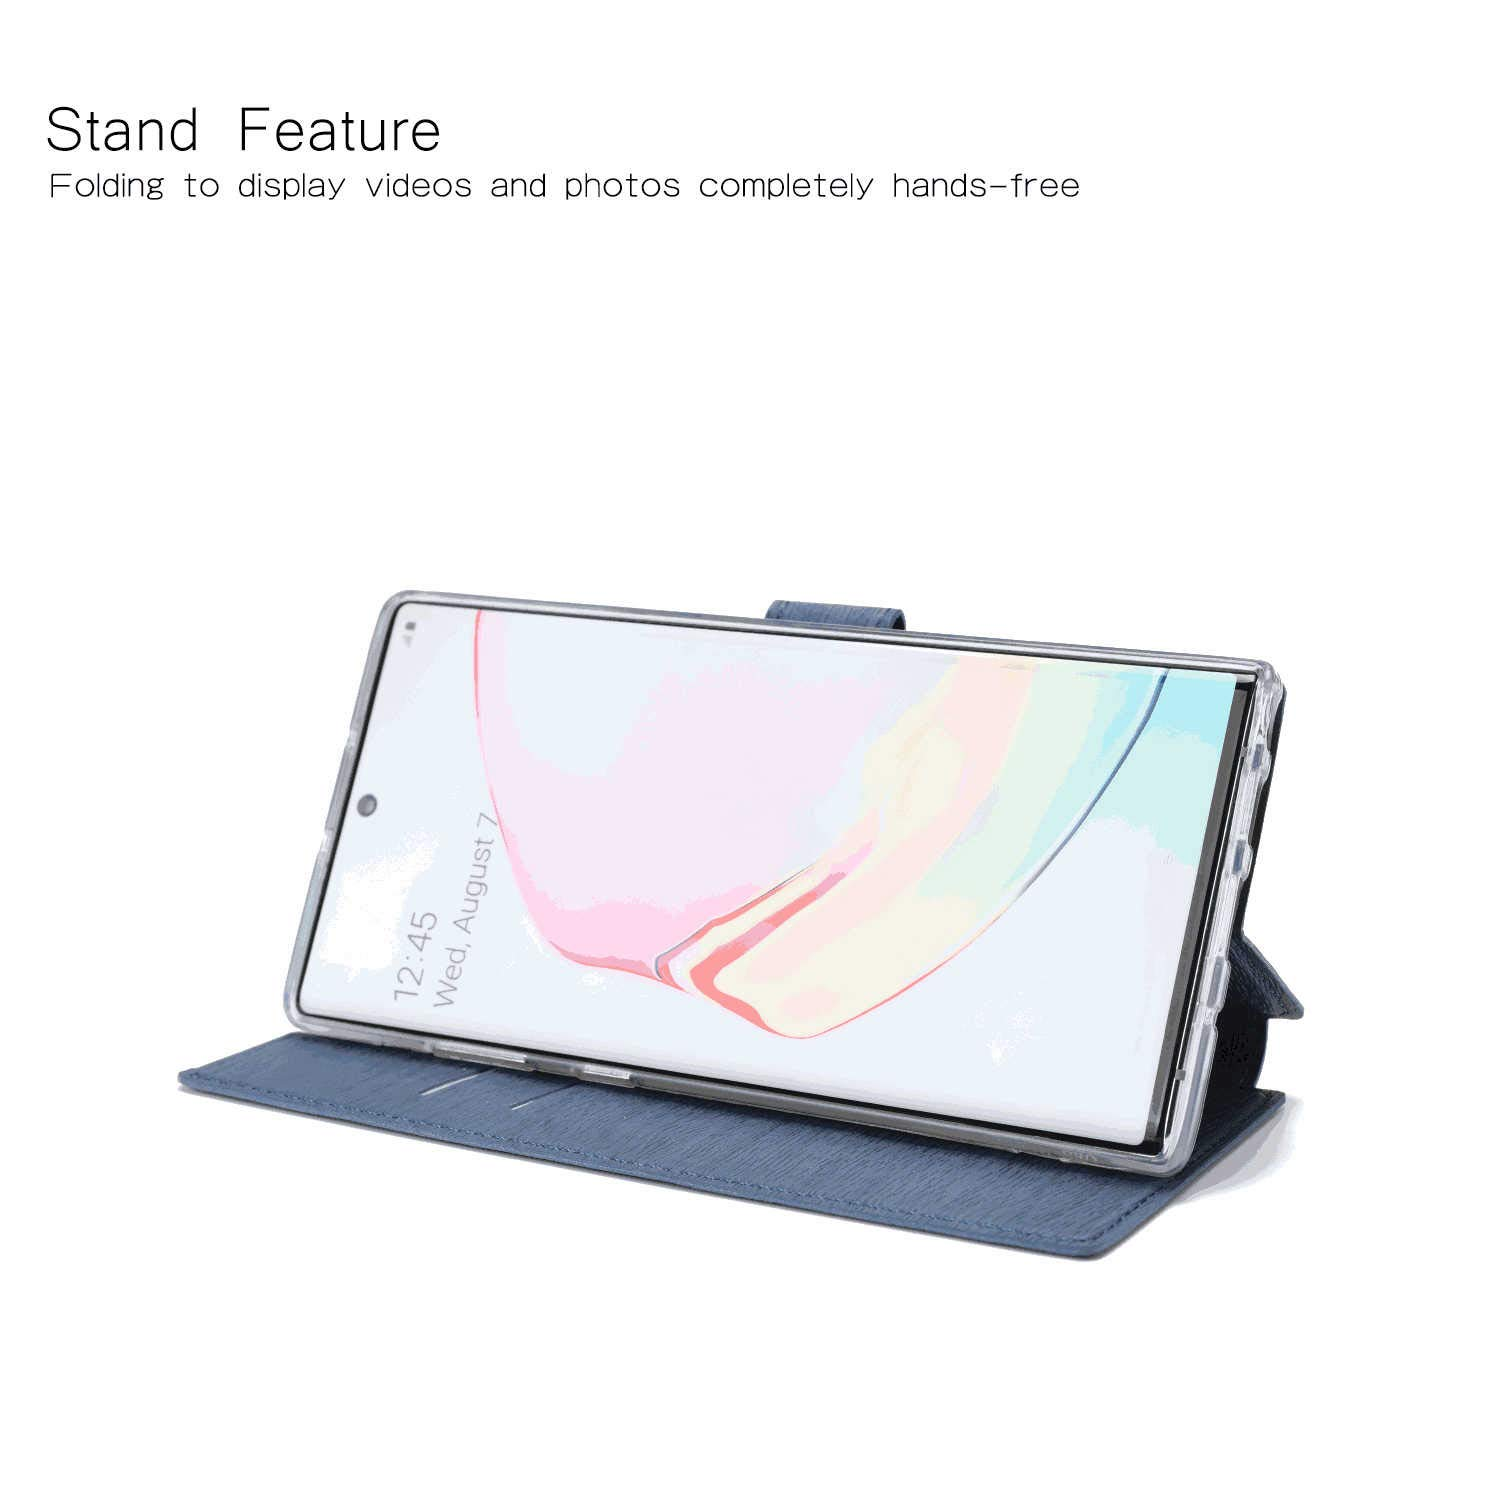 Cover for Huawei P30 lite Leather Extra-Durable Business Kickstand Mobile Phone Cover Card Holders with Free Waterproof-Bag Blue1 Huawei P30 lite Flip Case